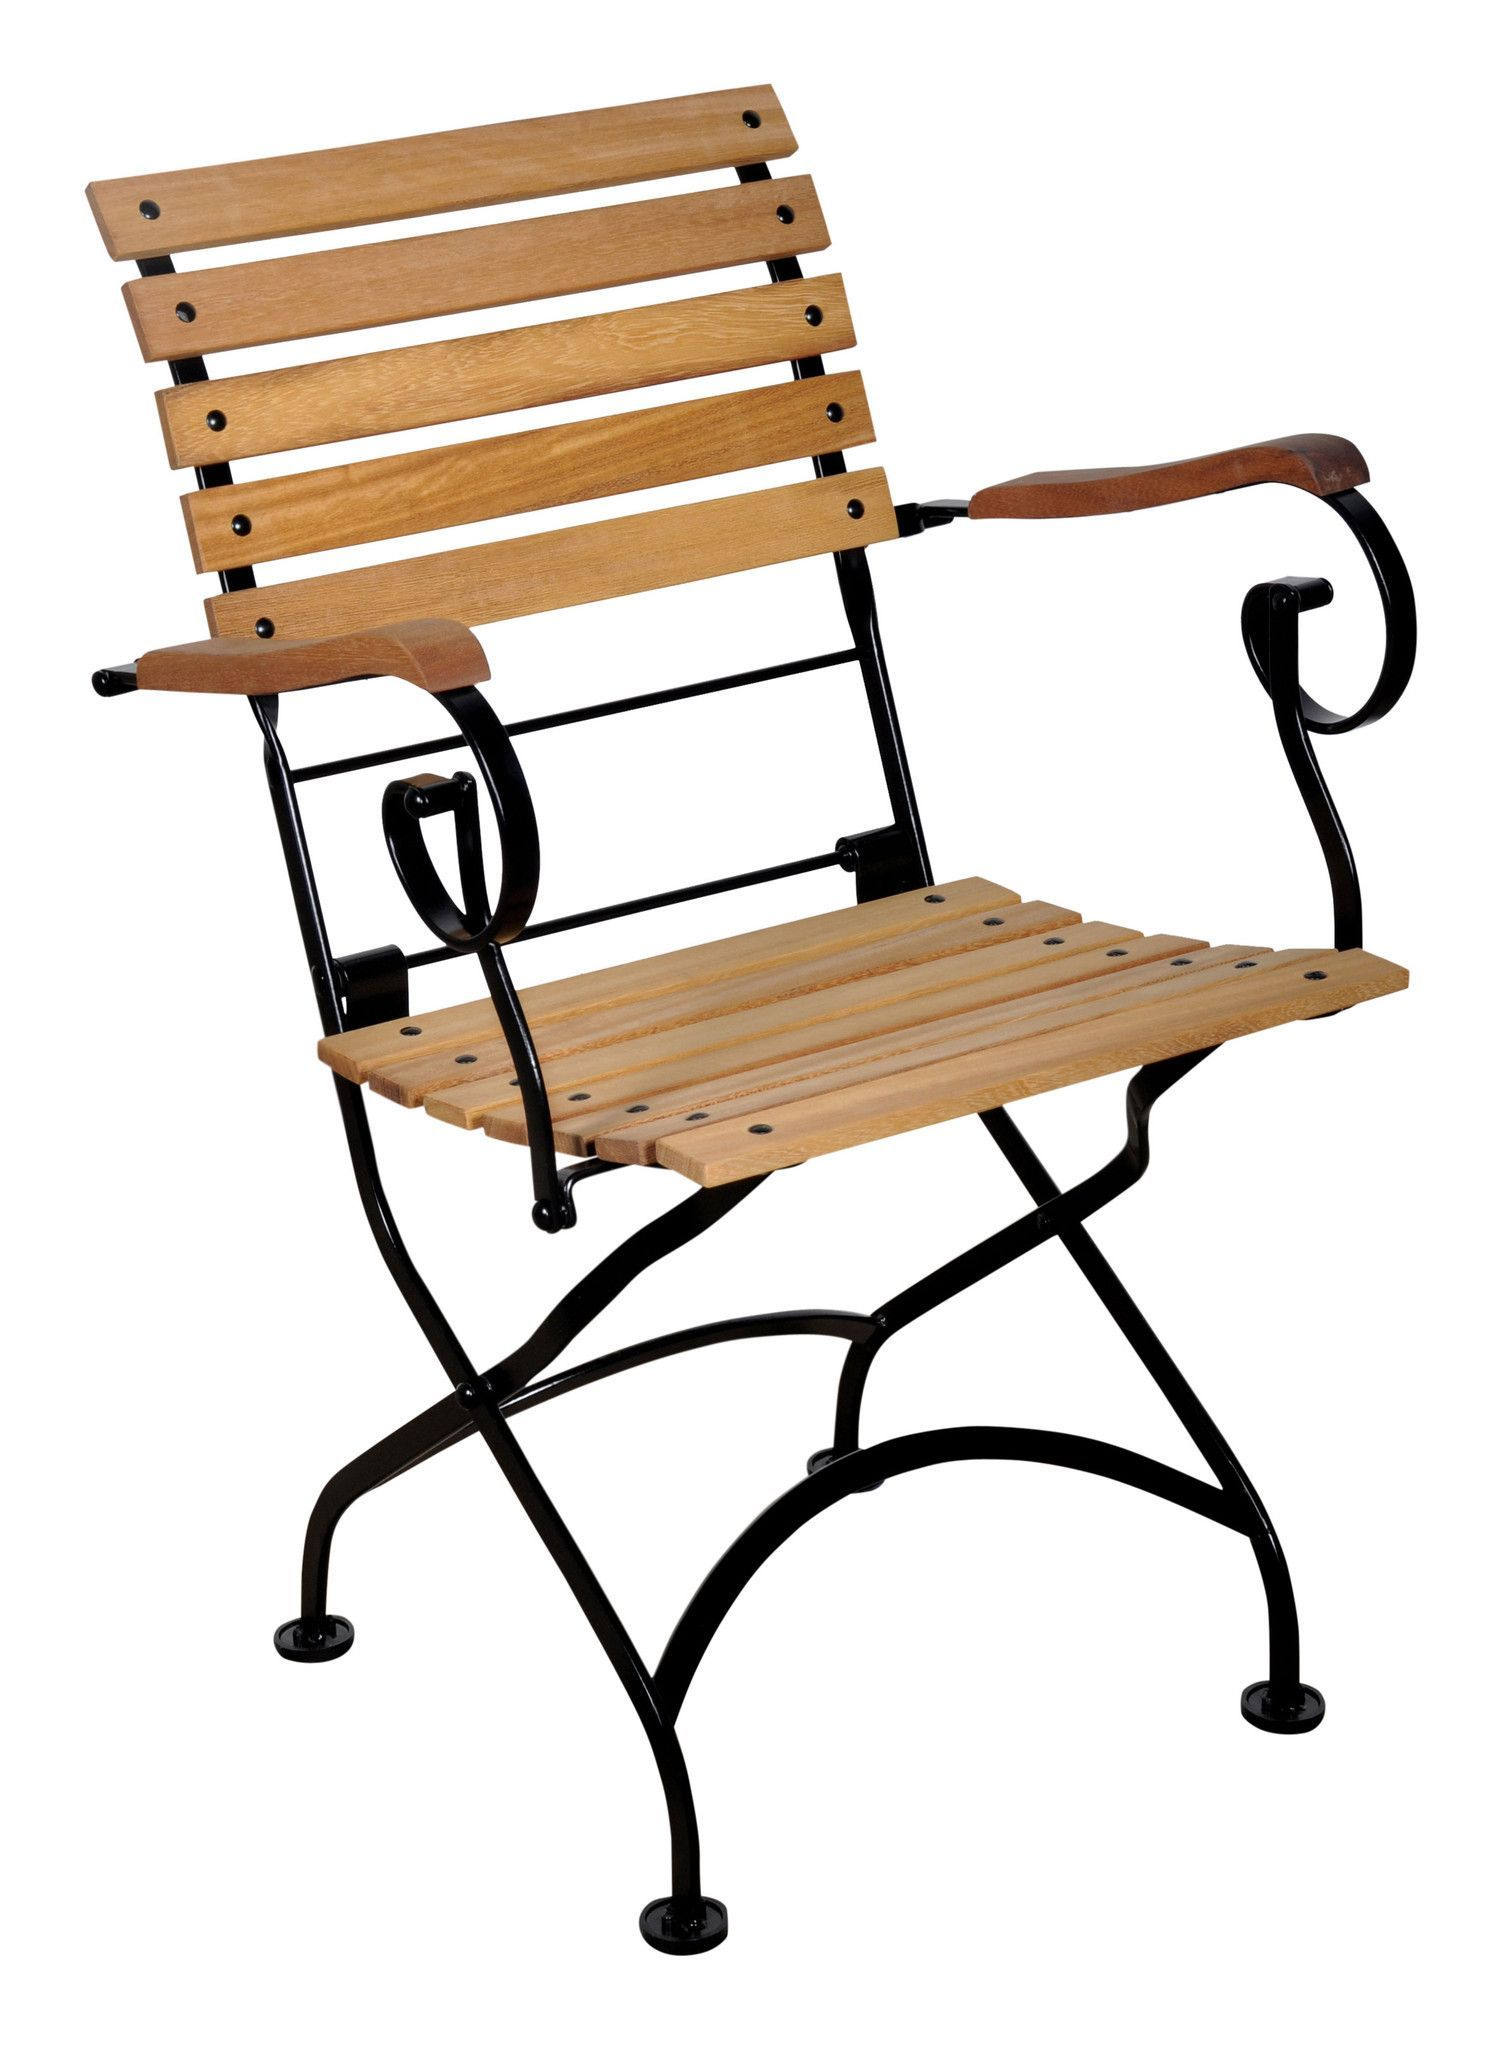 Perfect Buy Café Bistro French Folding Armchair With Teak Slats From EventsUber.com  (set Of 2) At EventsUber.com For Only $ 790.00